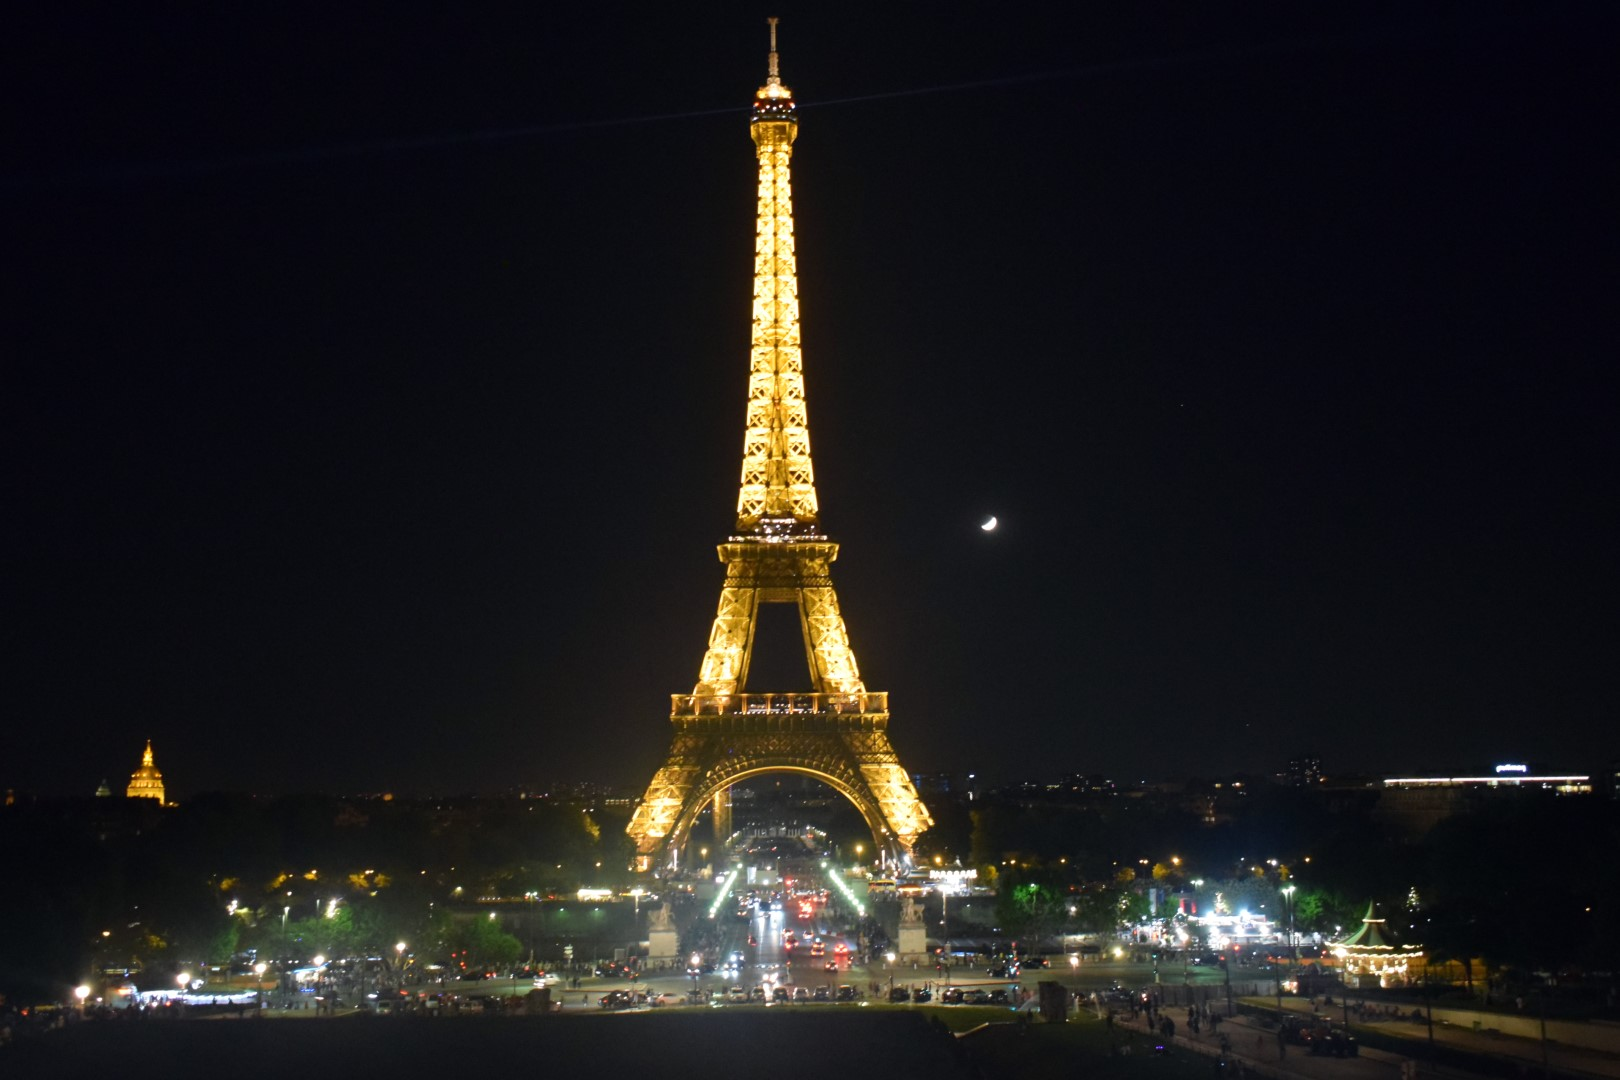 Eiffel Tower from Trocadéro (and the lunar eclipse!)